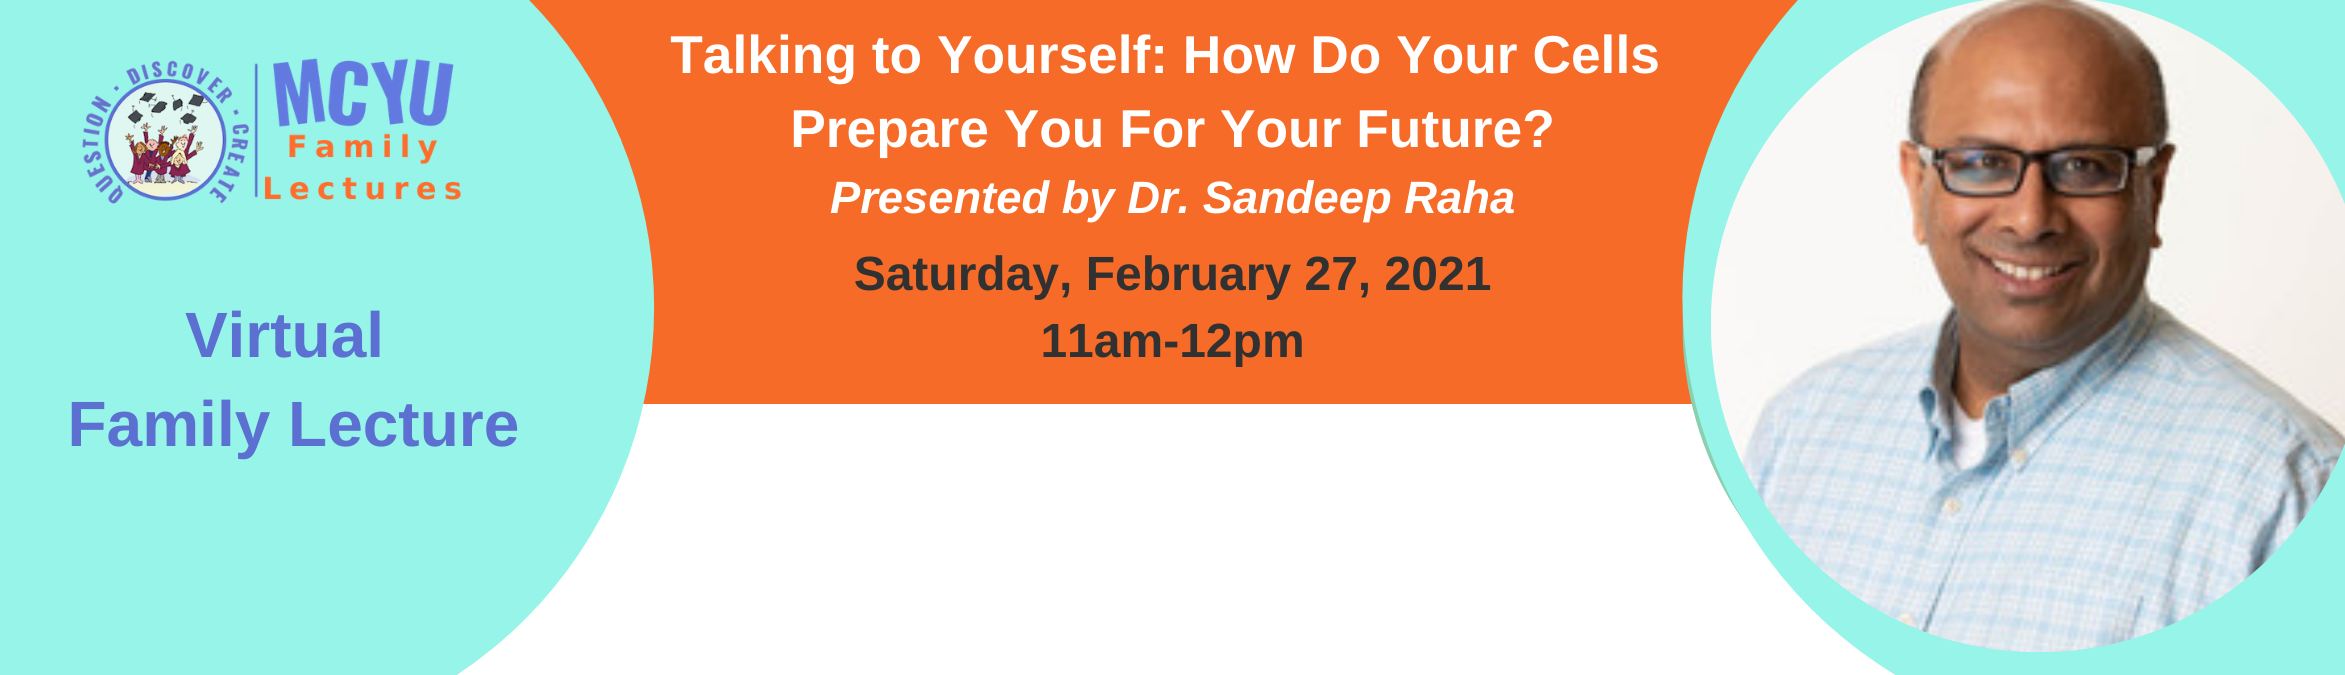 Virtual Family Lecture. Talking to Yourself: How do your cells prepare you for your future? (with Dr. Sandeep Raha). Saturday, February 27, 2021